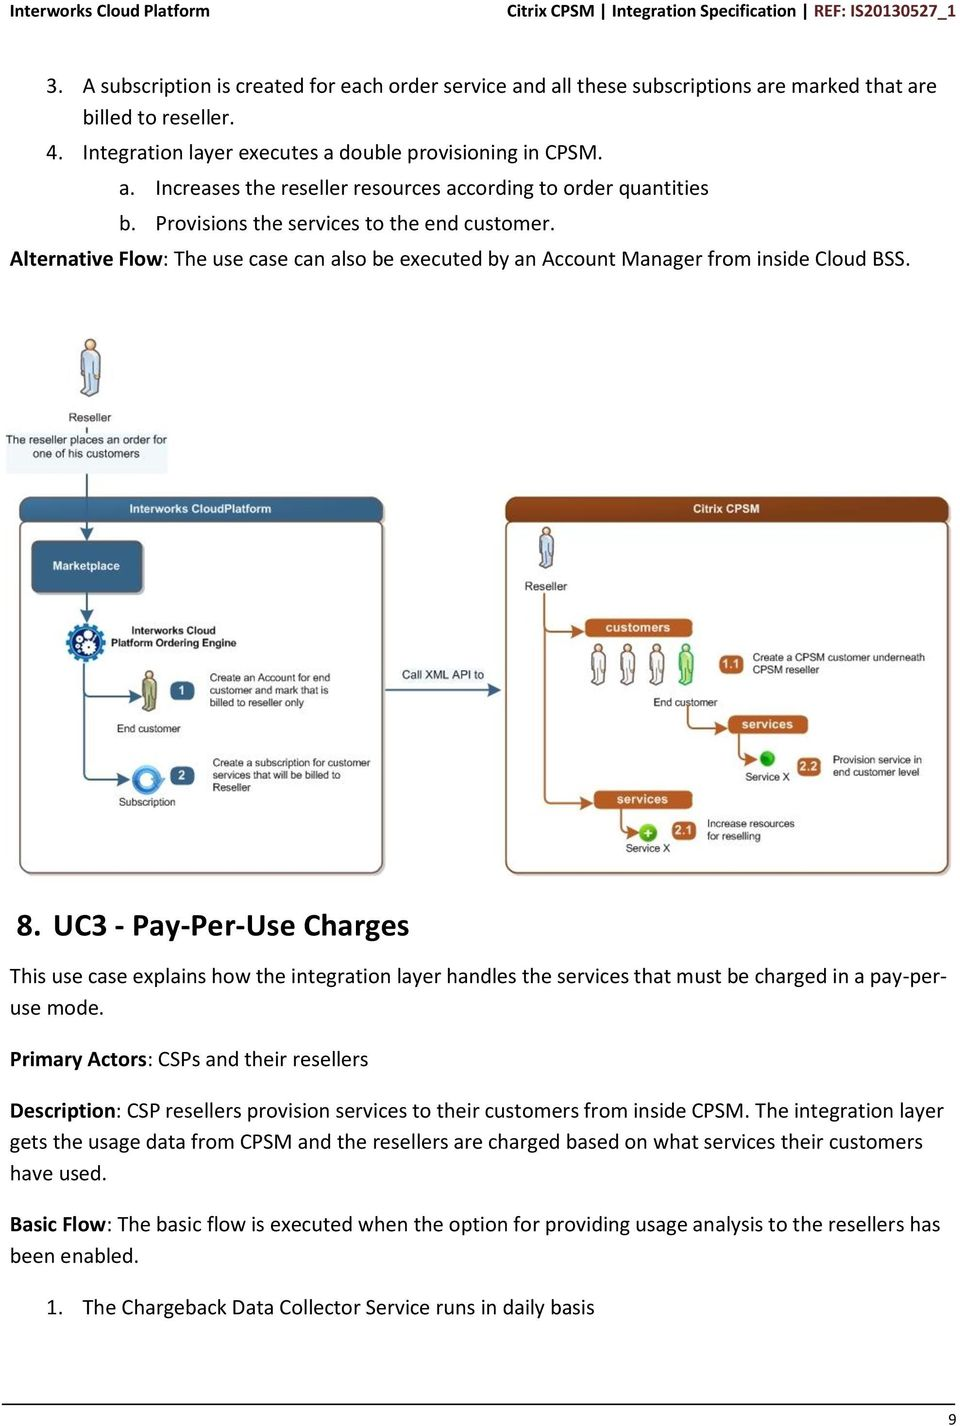 UC3 - Pay-Per-Use Charges This use case explains hw the integratin layer handles the services that must be charged in a pay-peruse mde.